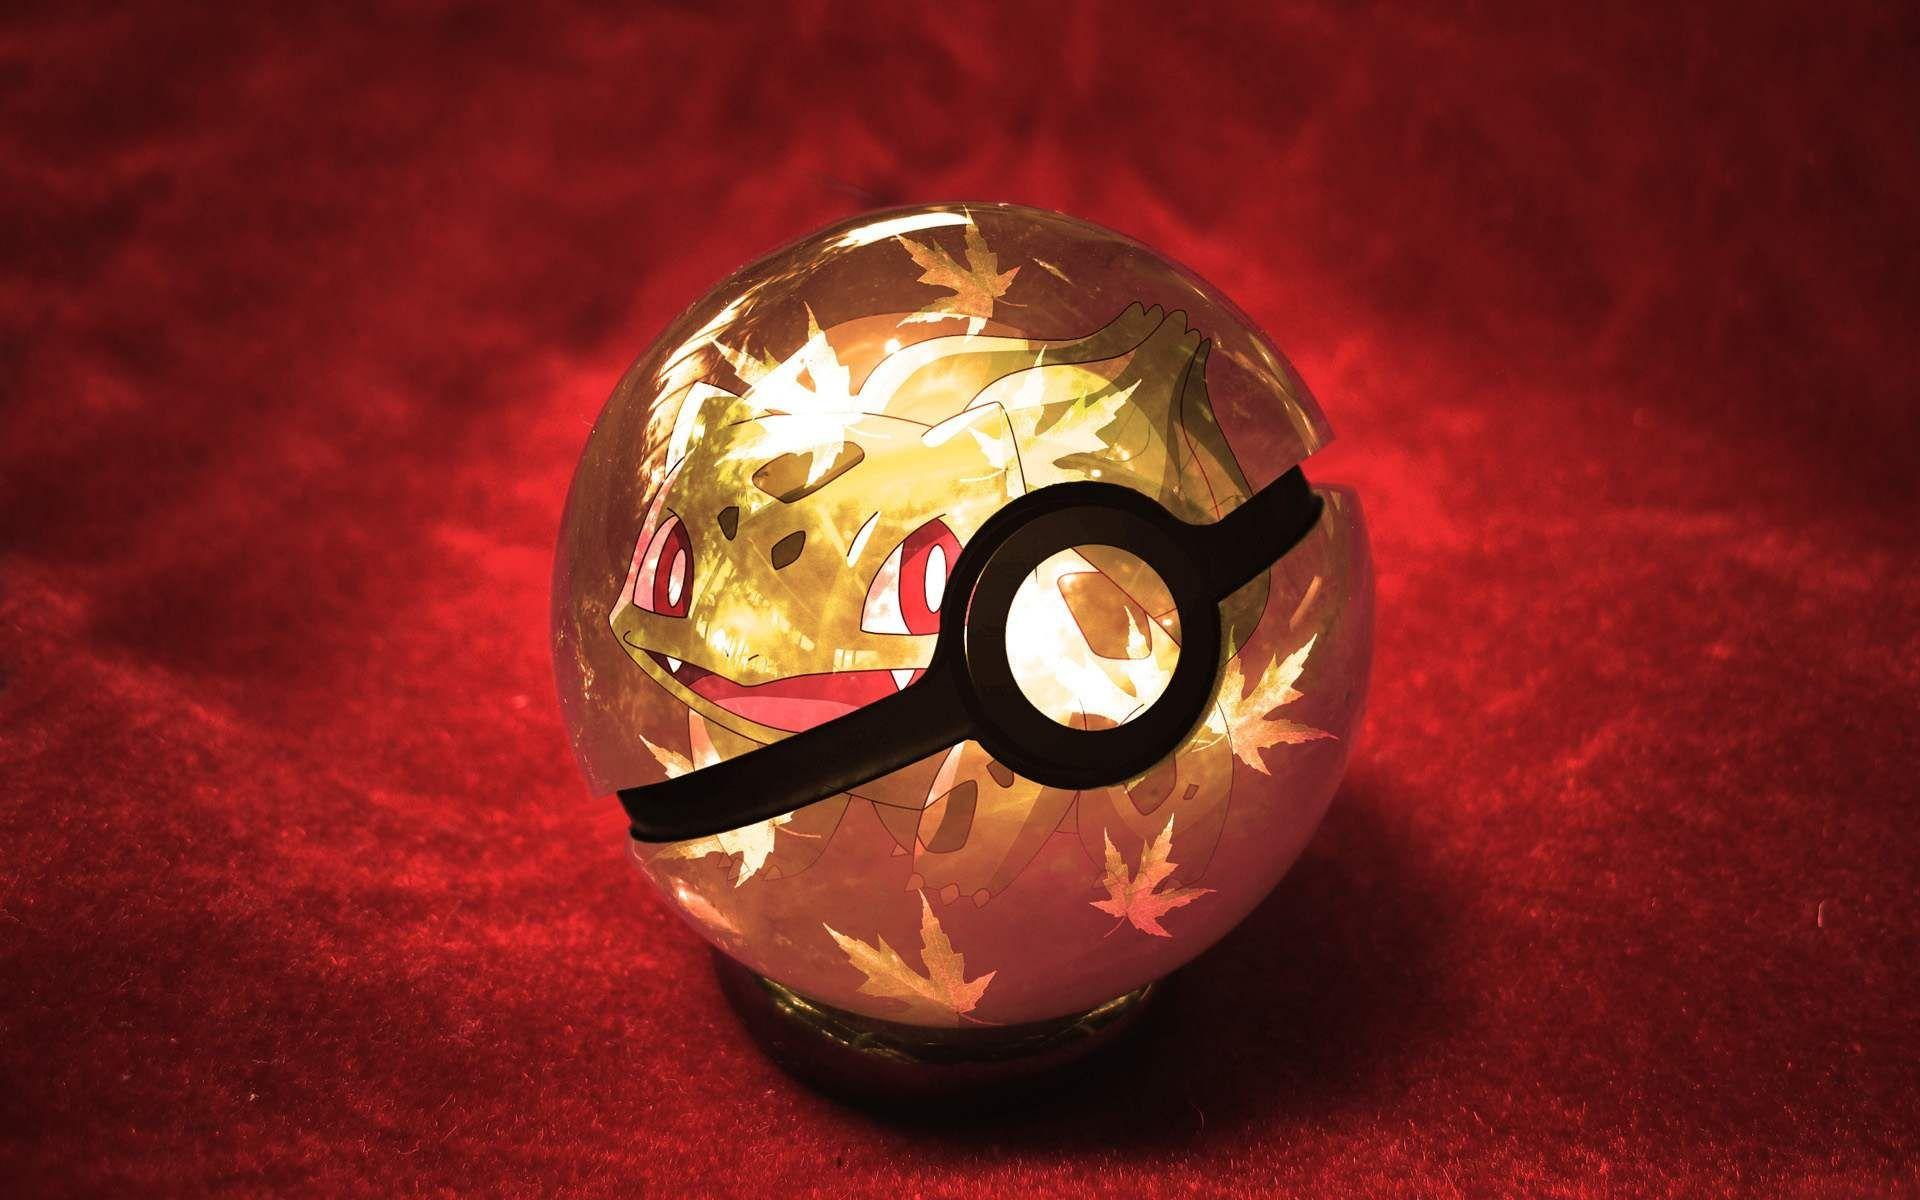 Cool Pokemon Ball Wallpapers - Top Free